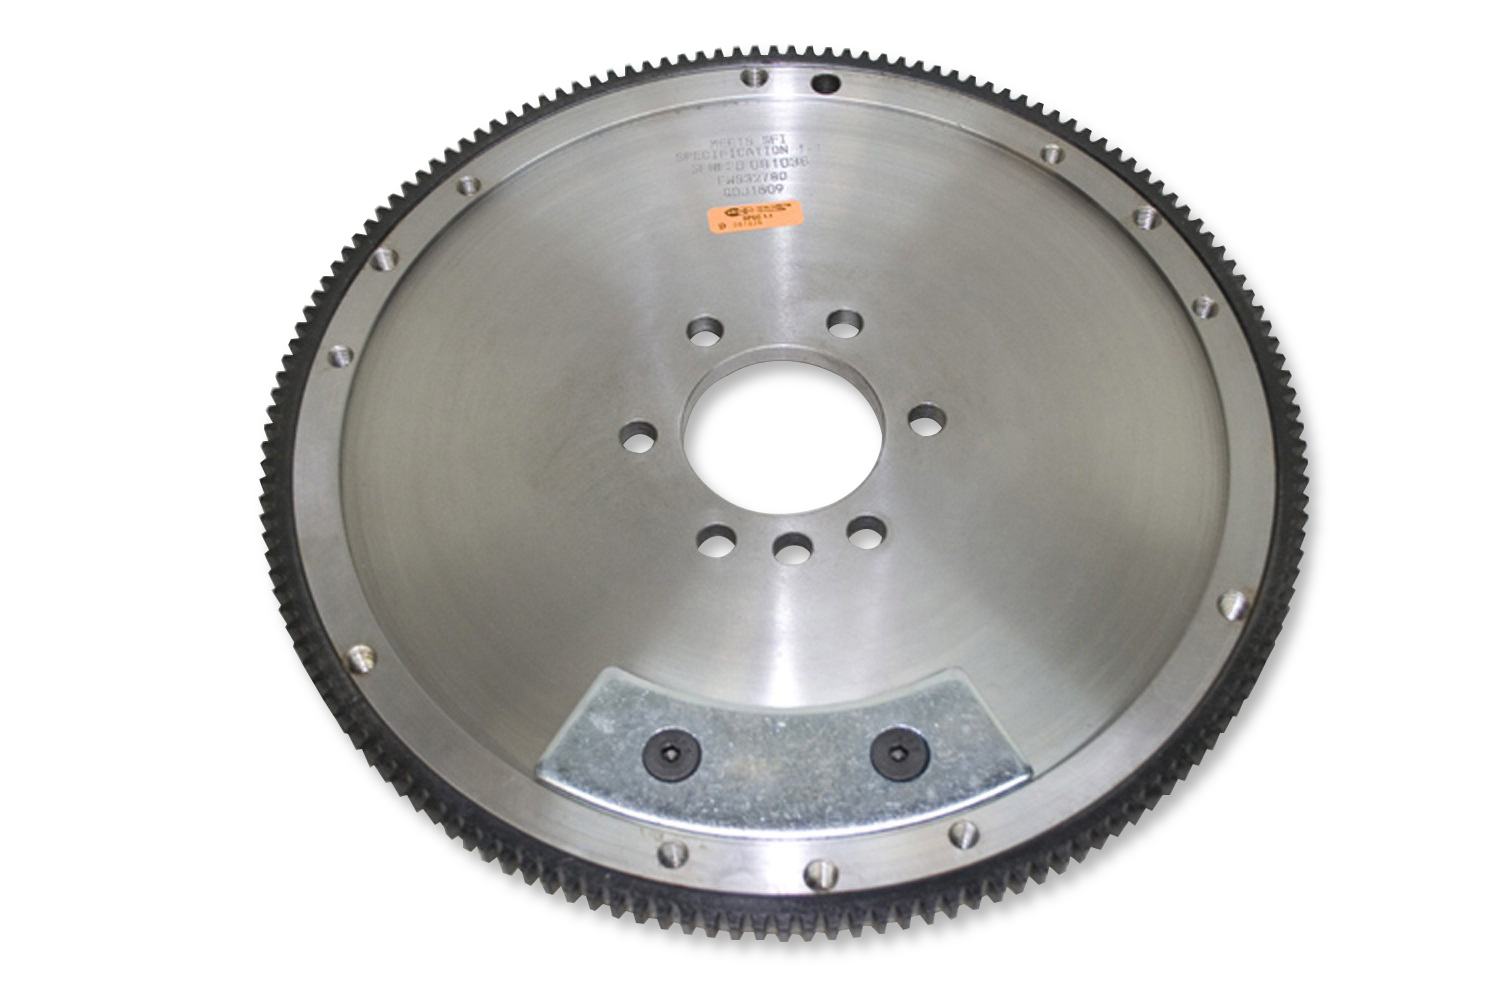 10-136 Hays Clutch Flywheel Use With 1970 To 1990 Chevy 454 CID Big